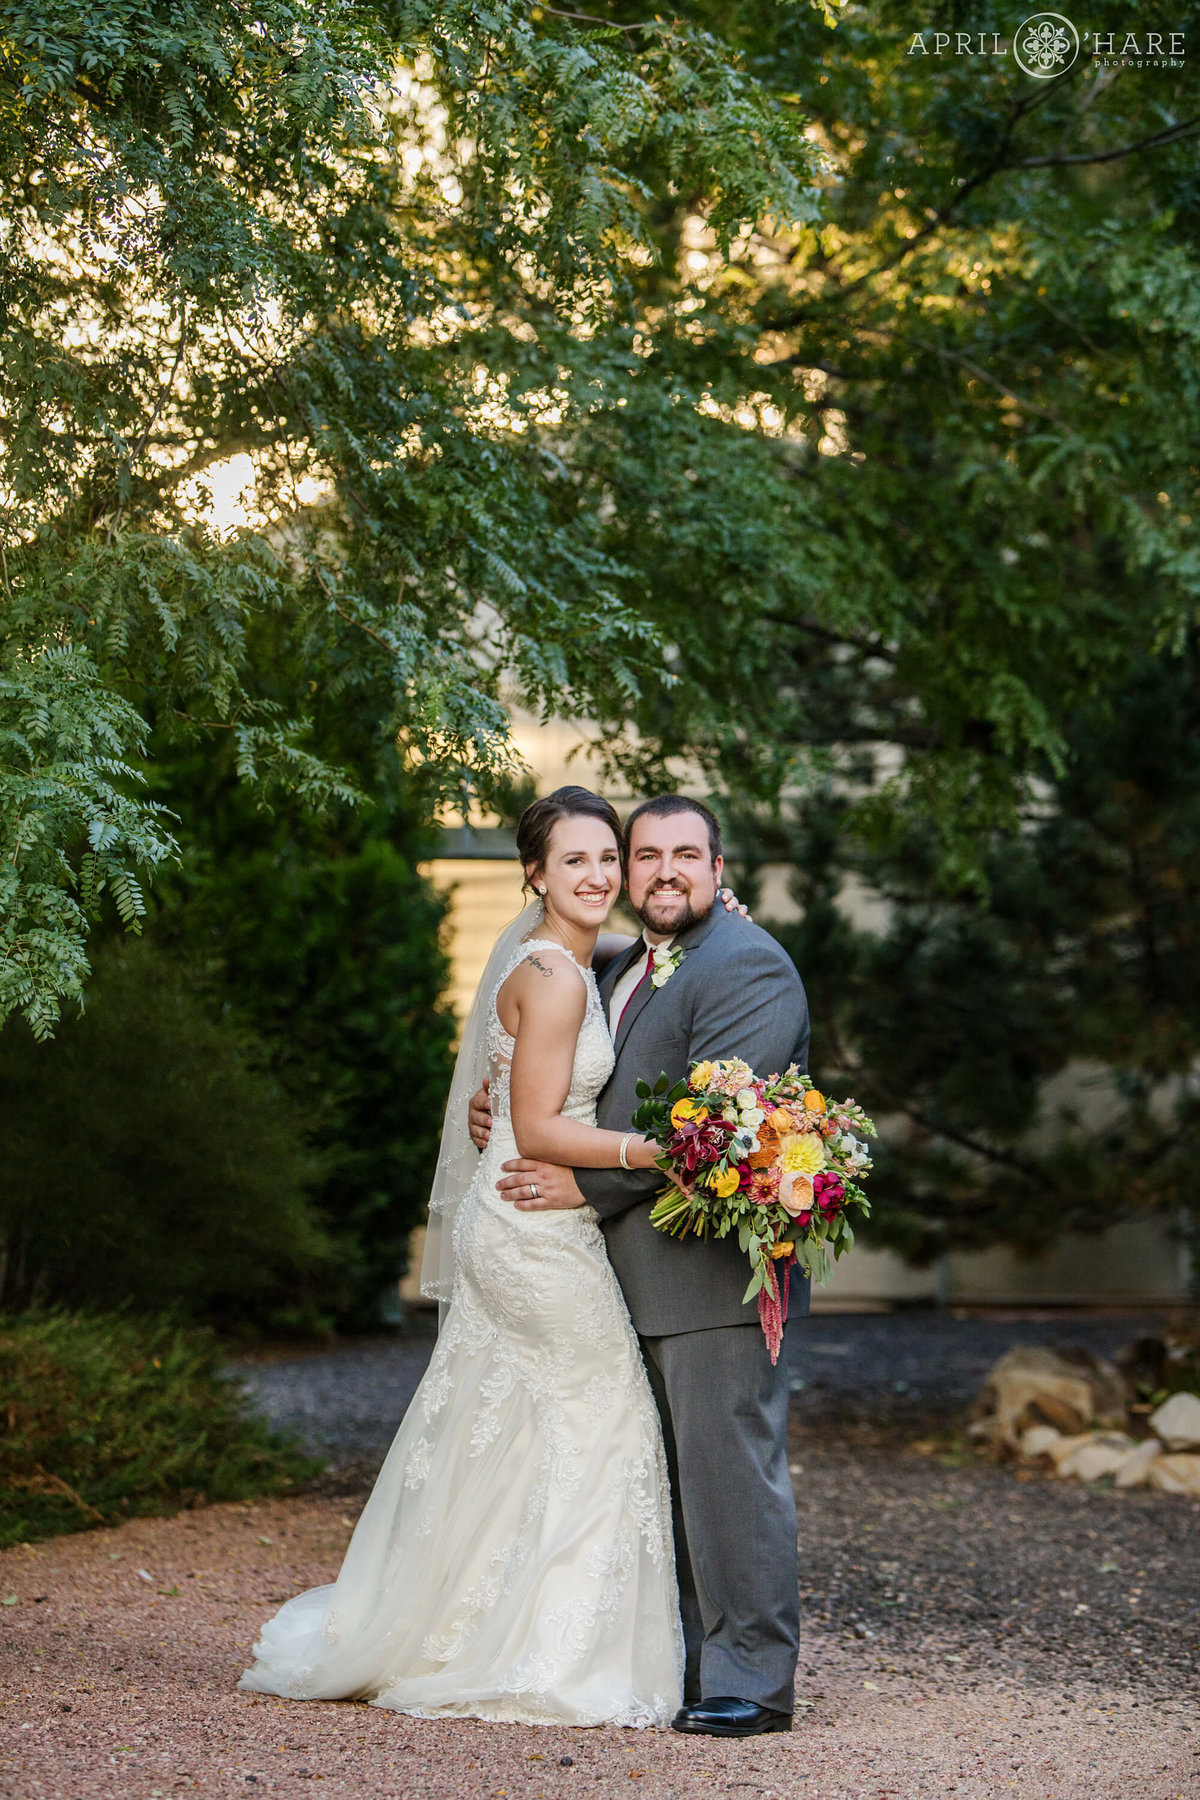 Pretty Bride and Groom Portrait at Sunset in Denver Colorado